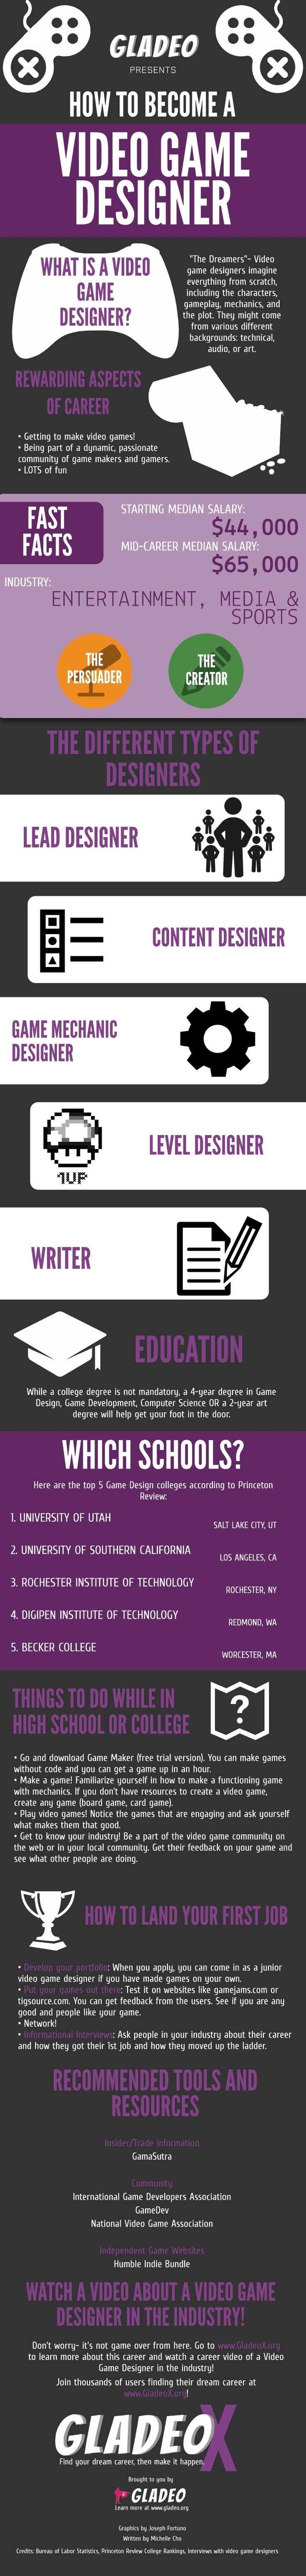 best images about career exploration and inspiration gladeo how to become a video game designer stem steam jobs careers